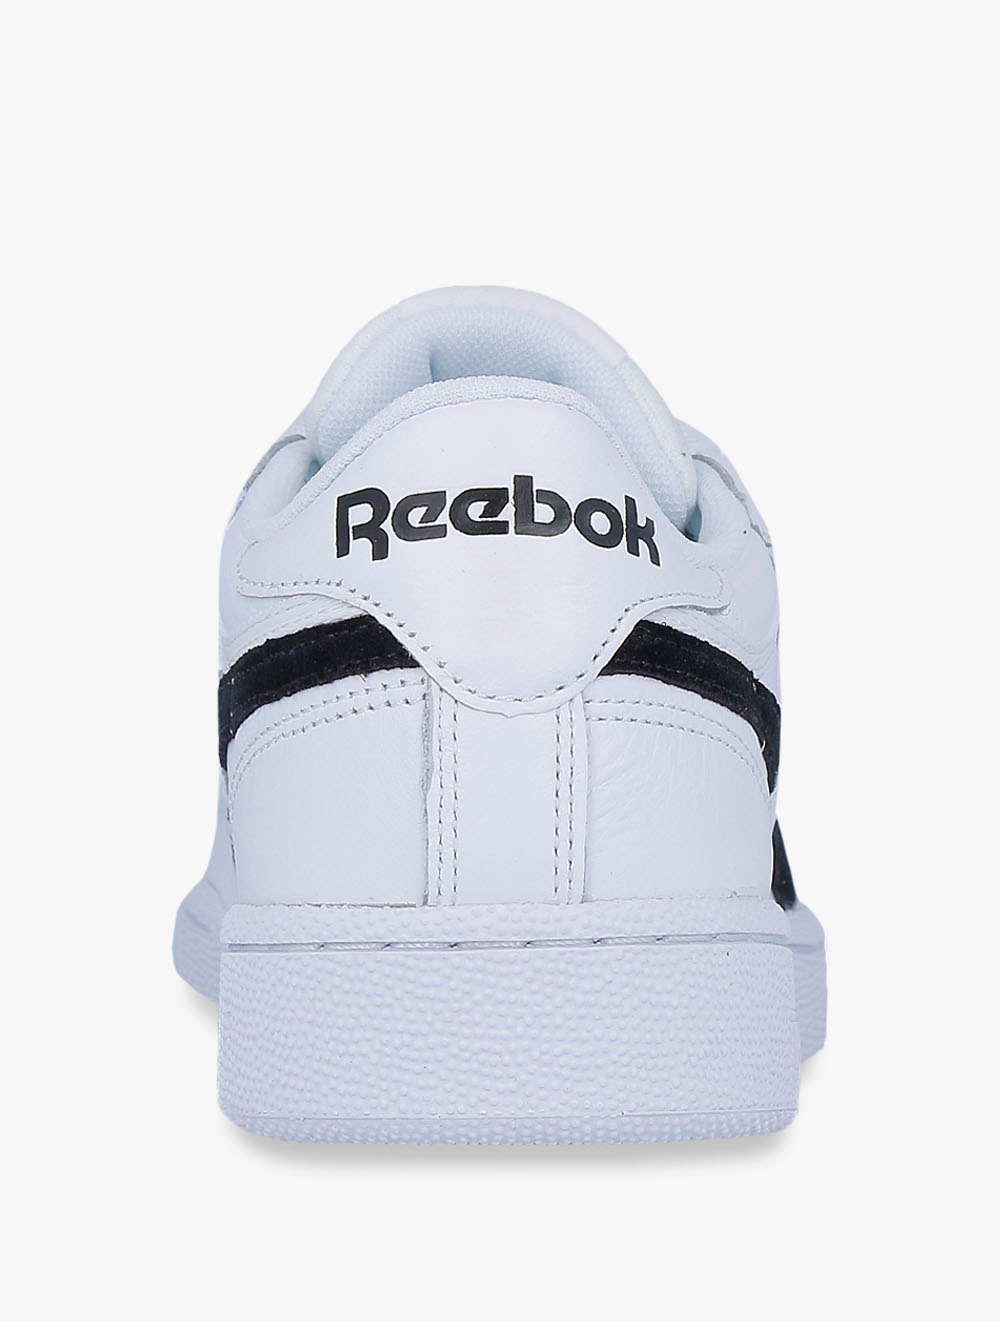 cc16f9ed513 In On Buy Indonesia From Sports Reebok Shoes wcPACwqz8I